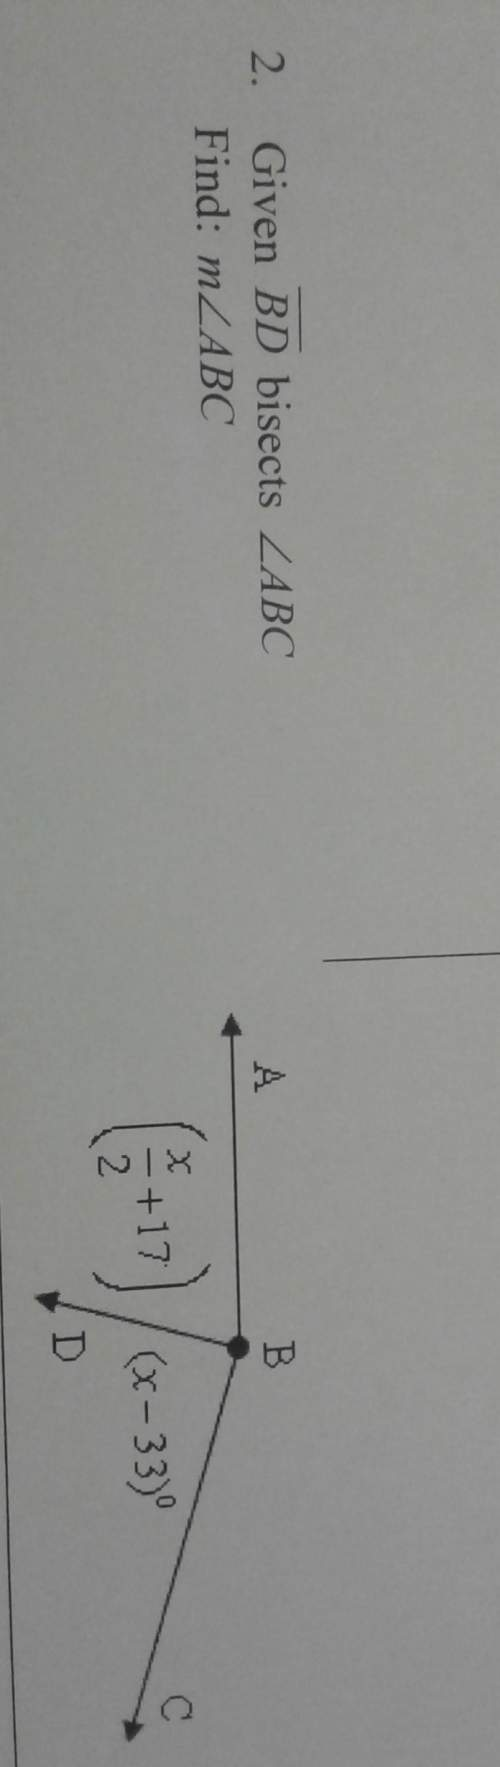 Ineed solving this problem with proofs if at all possible